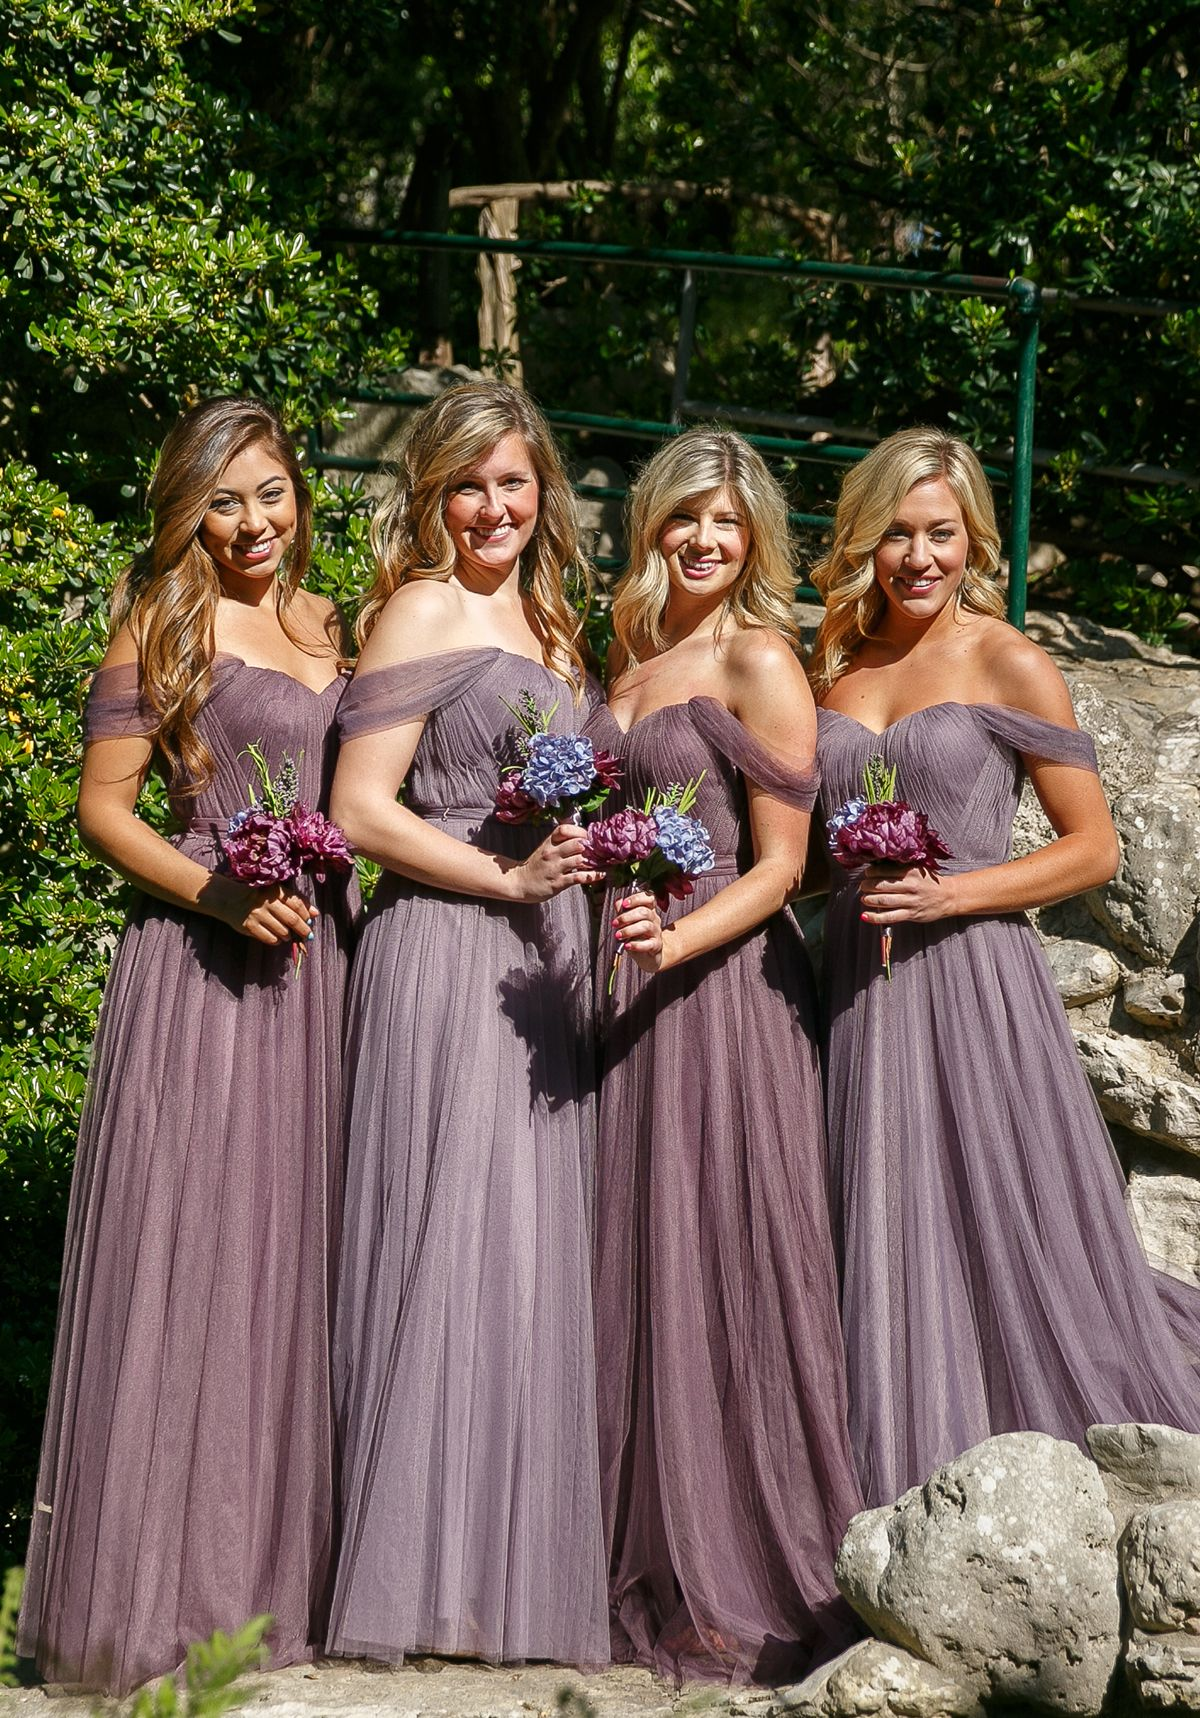 Ultra Off The Shoulder Purple Bridesmaid Dresses From Revelry